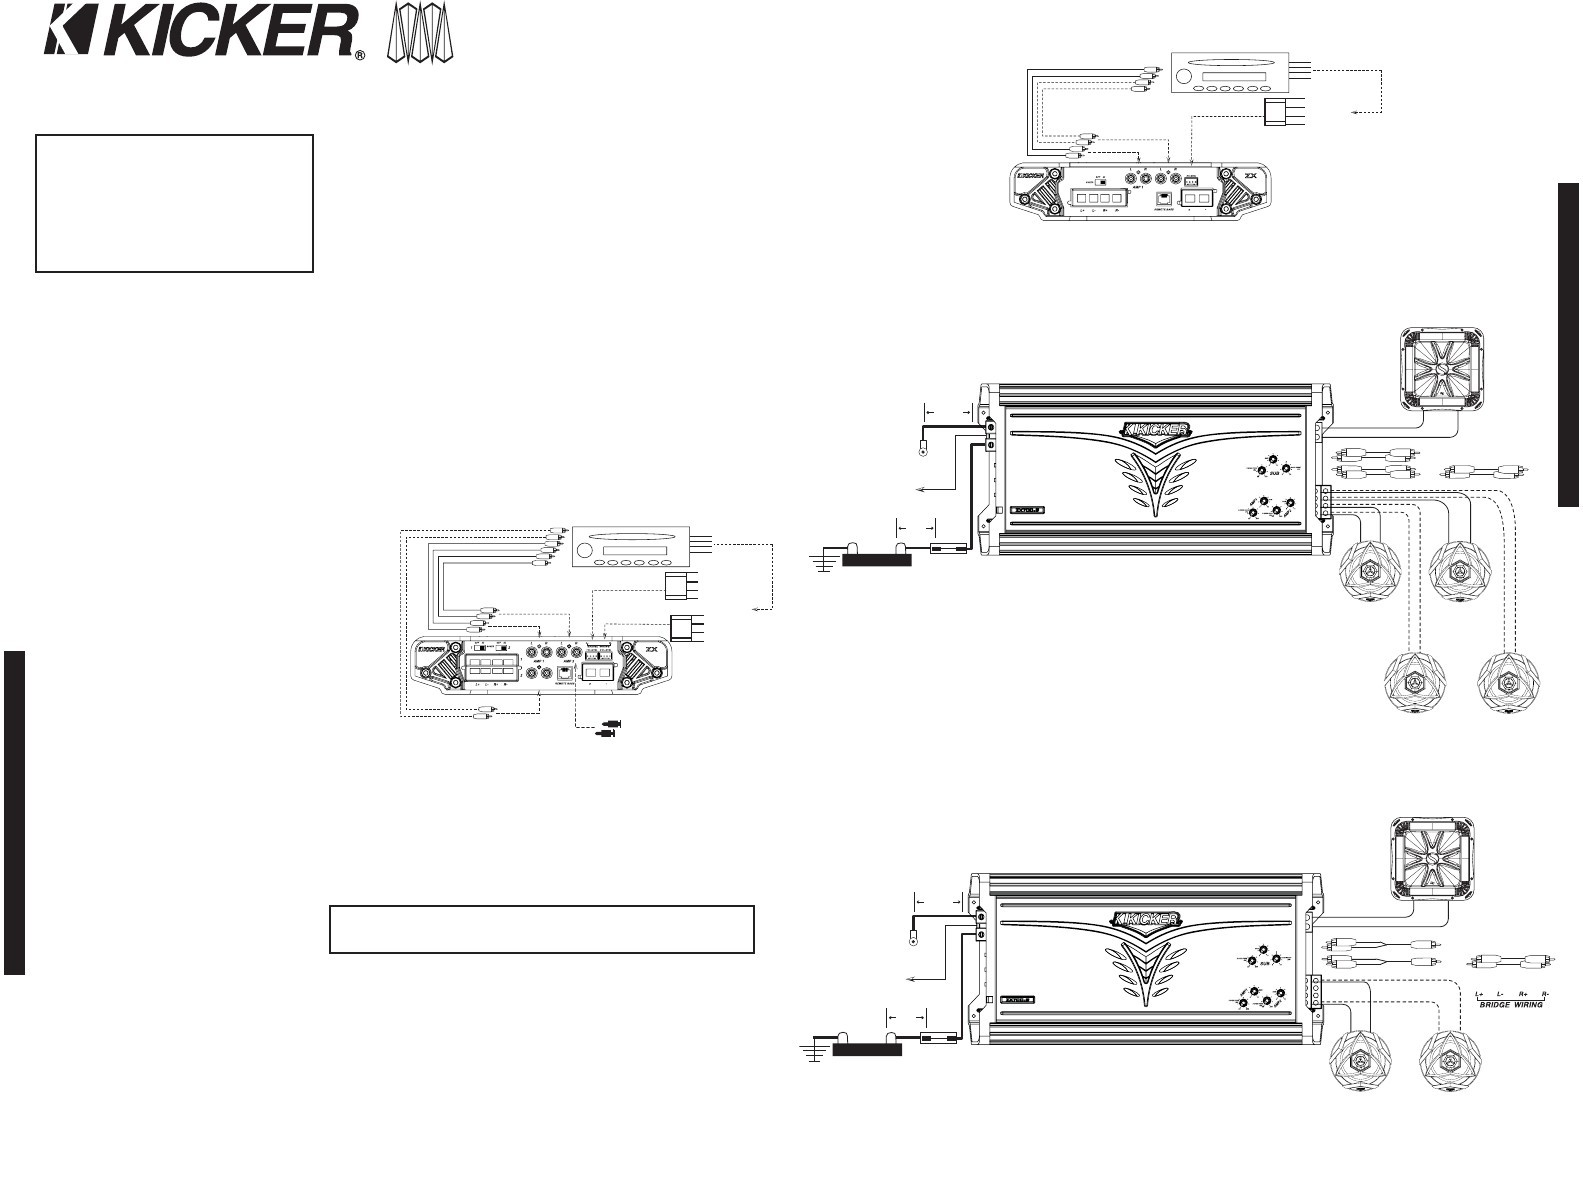 kicker 5 channel amp wiring diagram